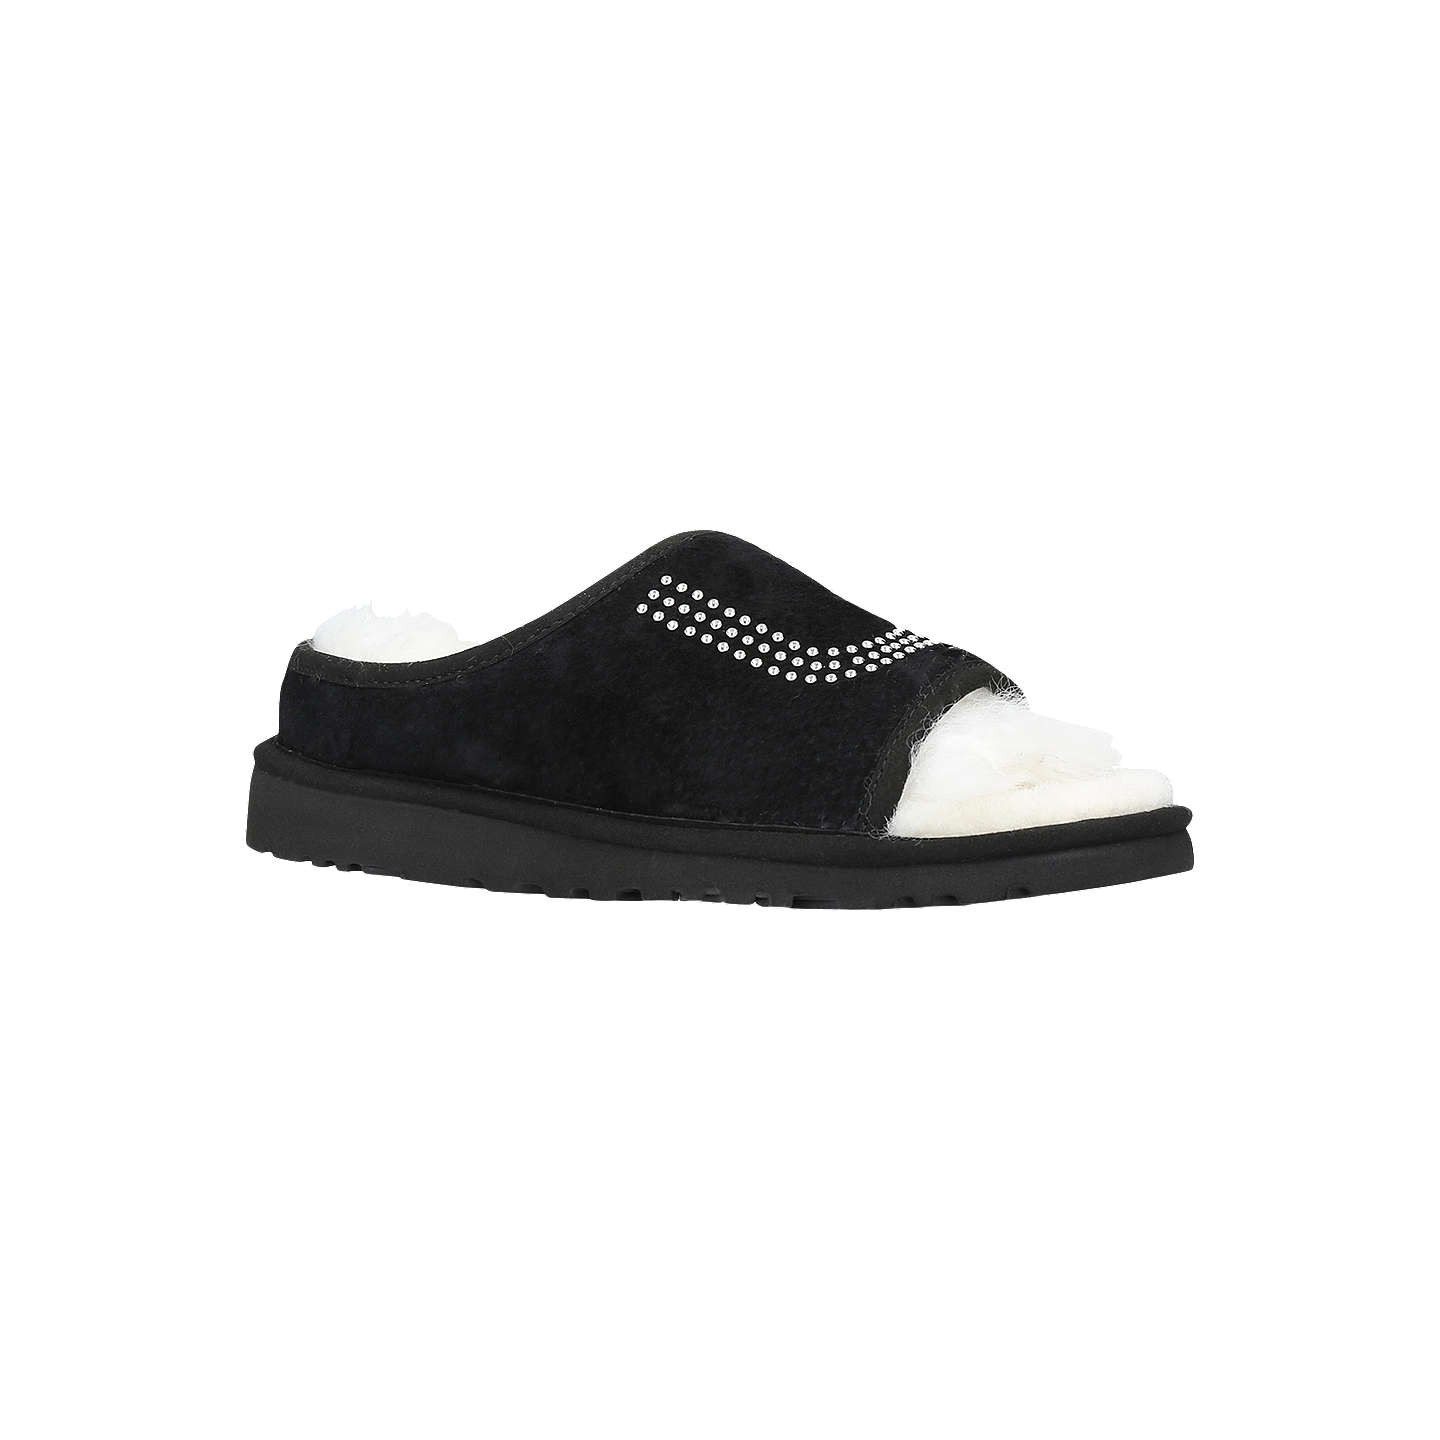 UGG Slide Stud Slippers 4346 - Slippers Black Suede Suede chez John Lewis 3a06e18 - freemetalalbums.info